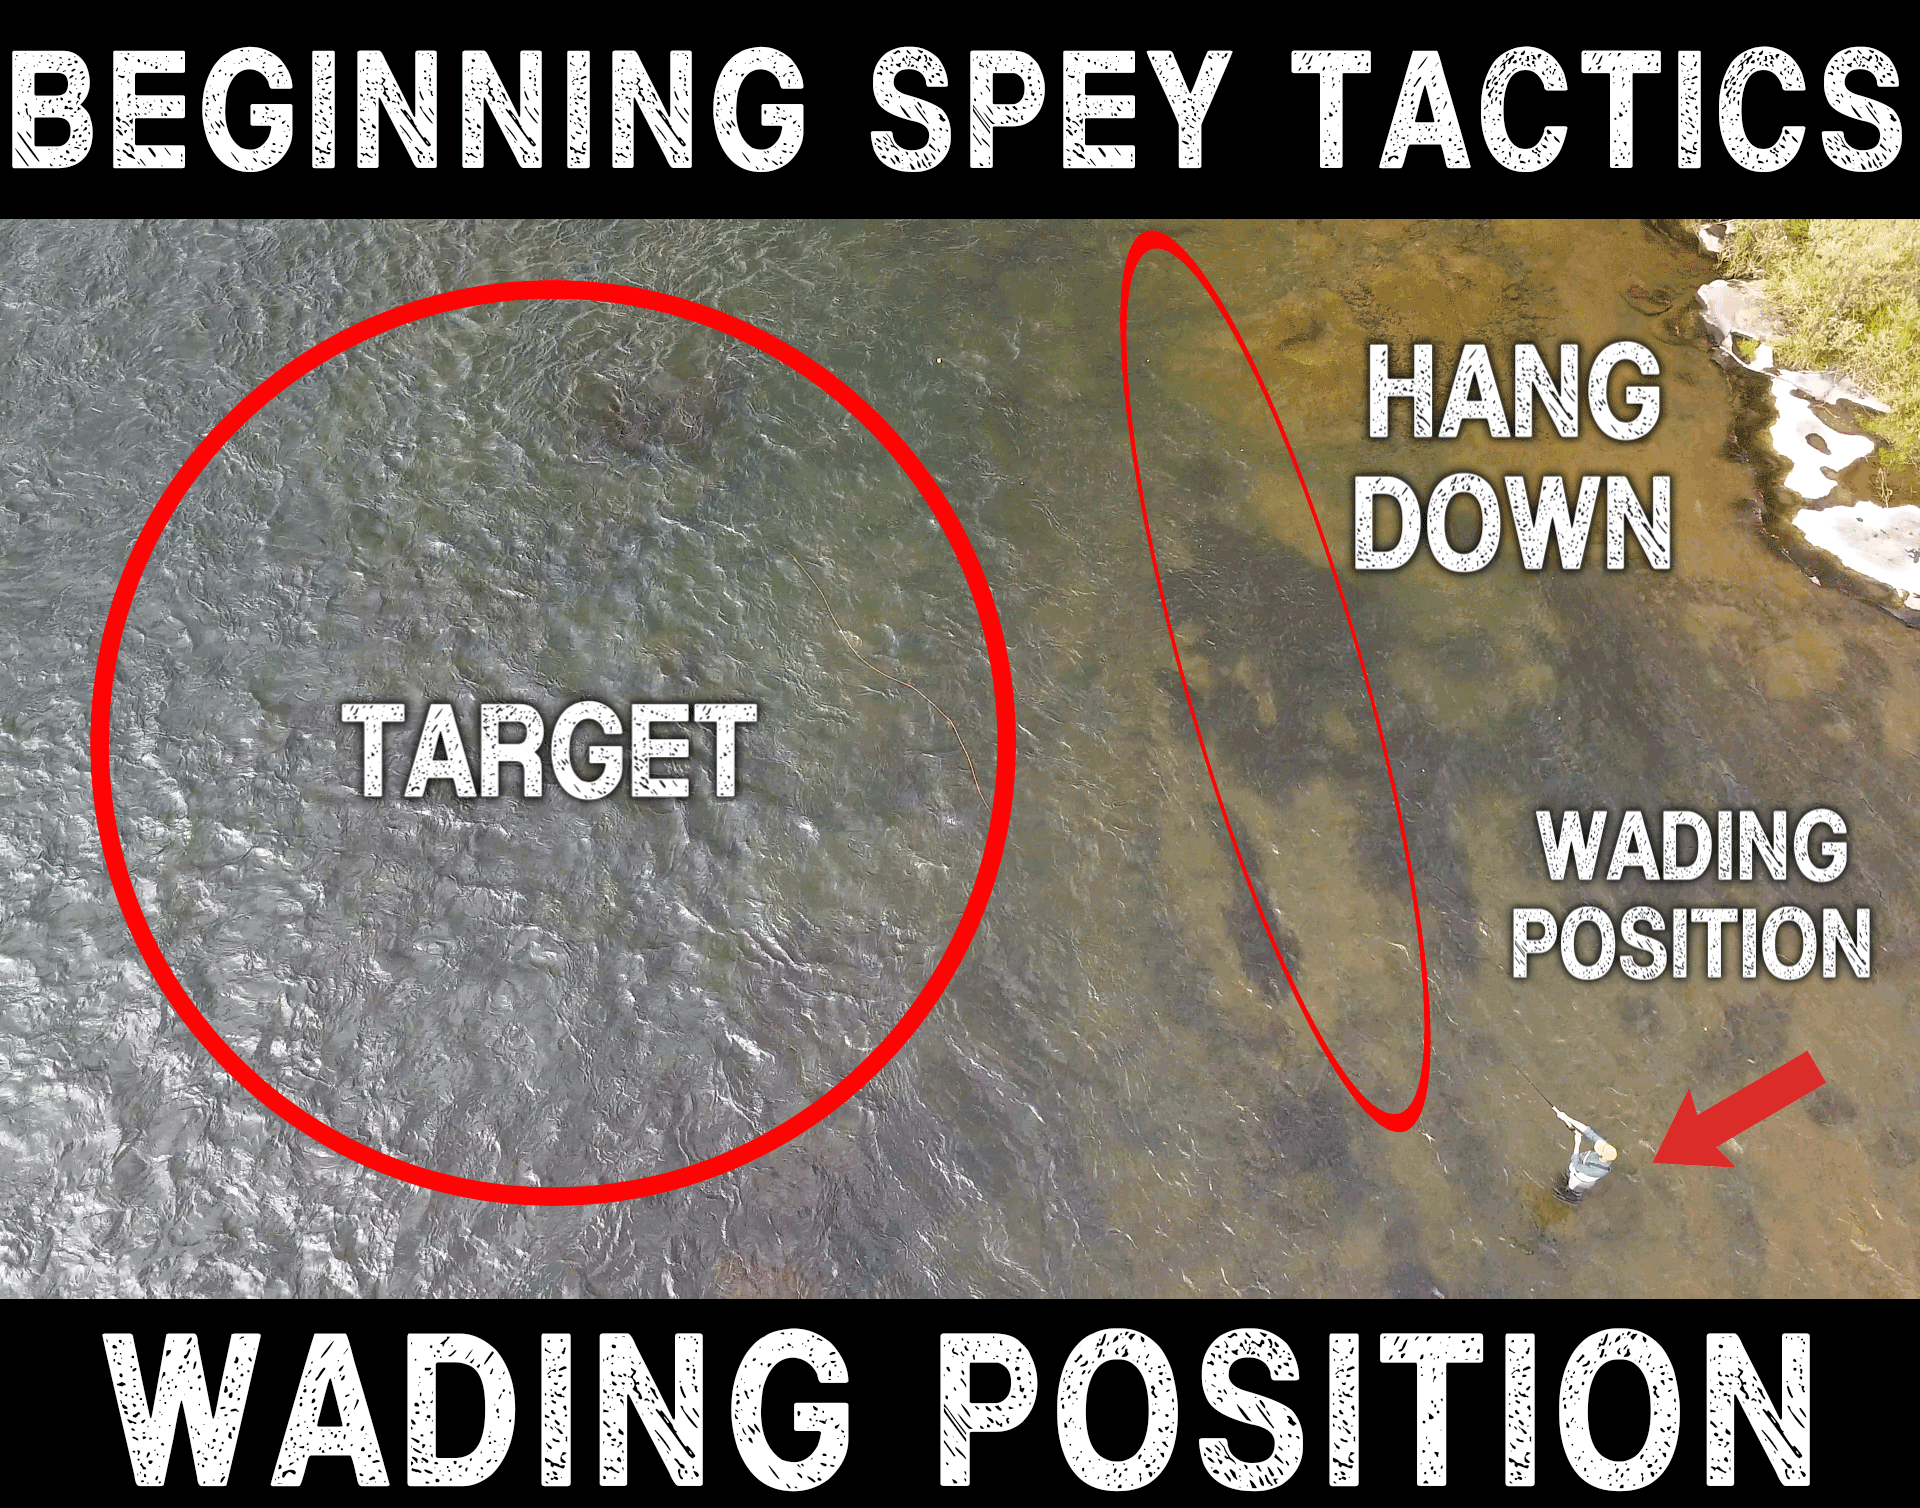 Wading Position | Beginning Spey Tactics Ep. 3